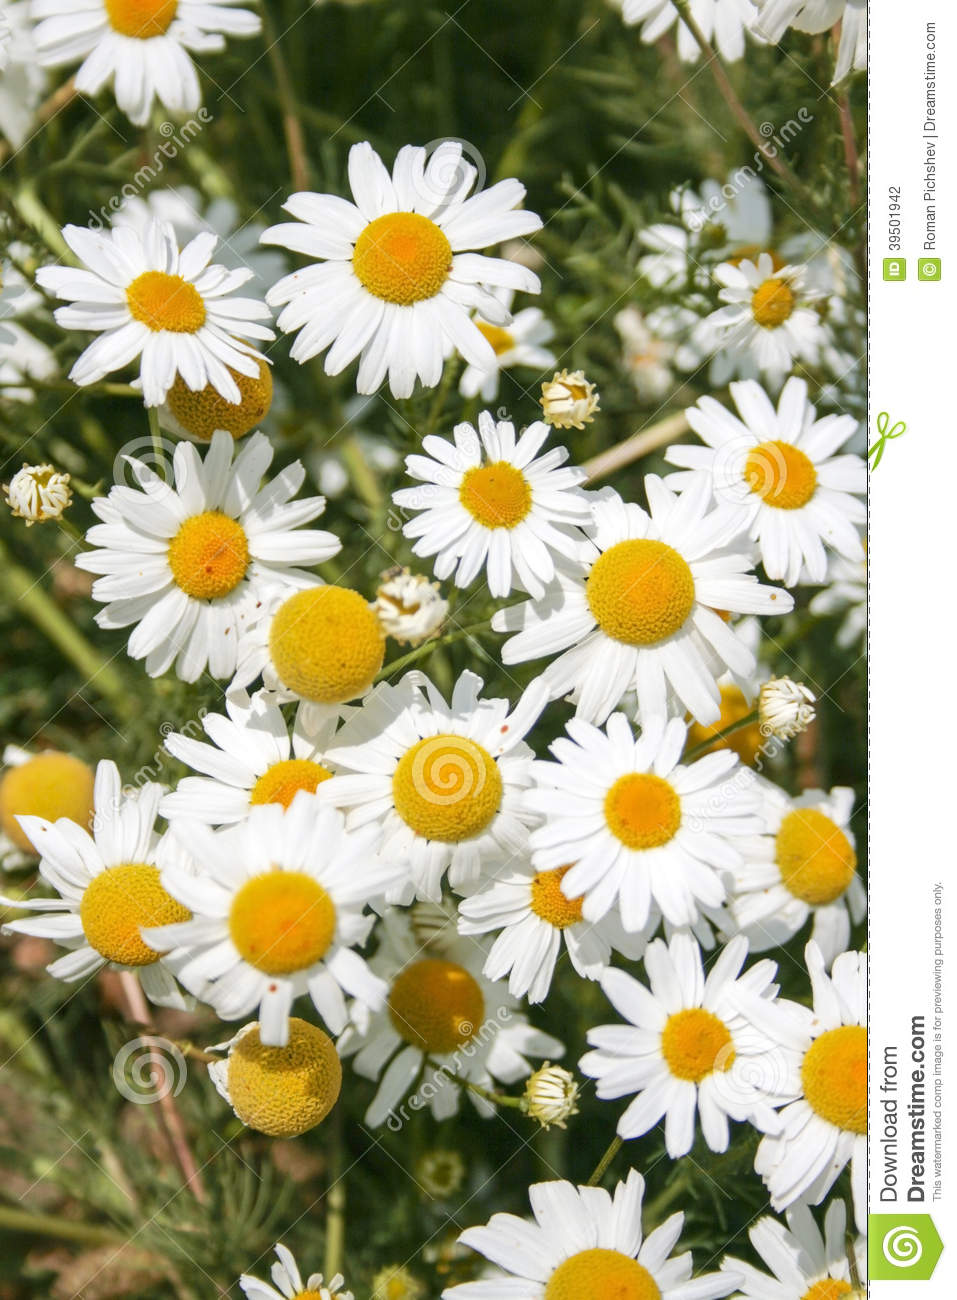 Daisy wheel field